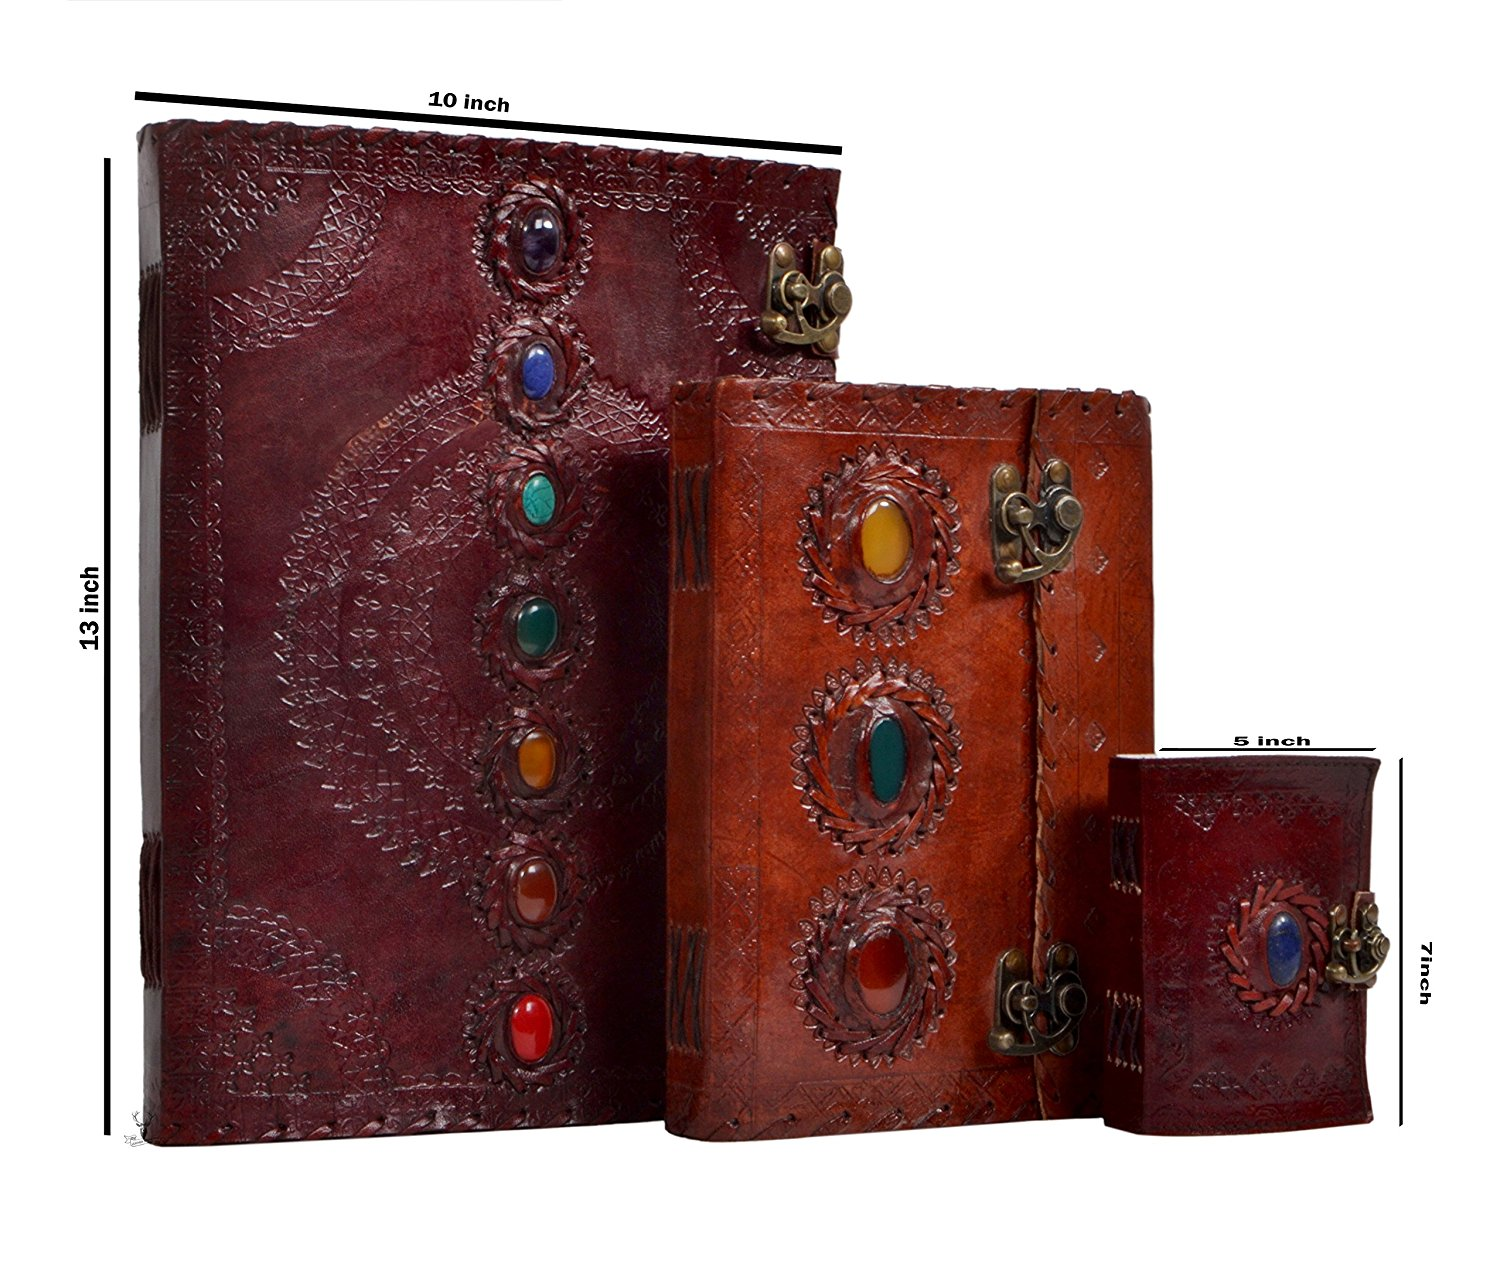 Leather Journal Handmade Medieval Stone Embossed Set of Three Handmade Leather Journal Travel Diary Handmade Notebook for Men & Women Antique Quality Blank Paper & 120 Pages